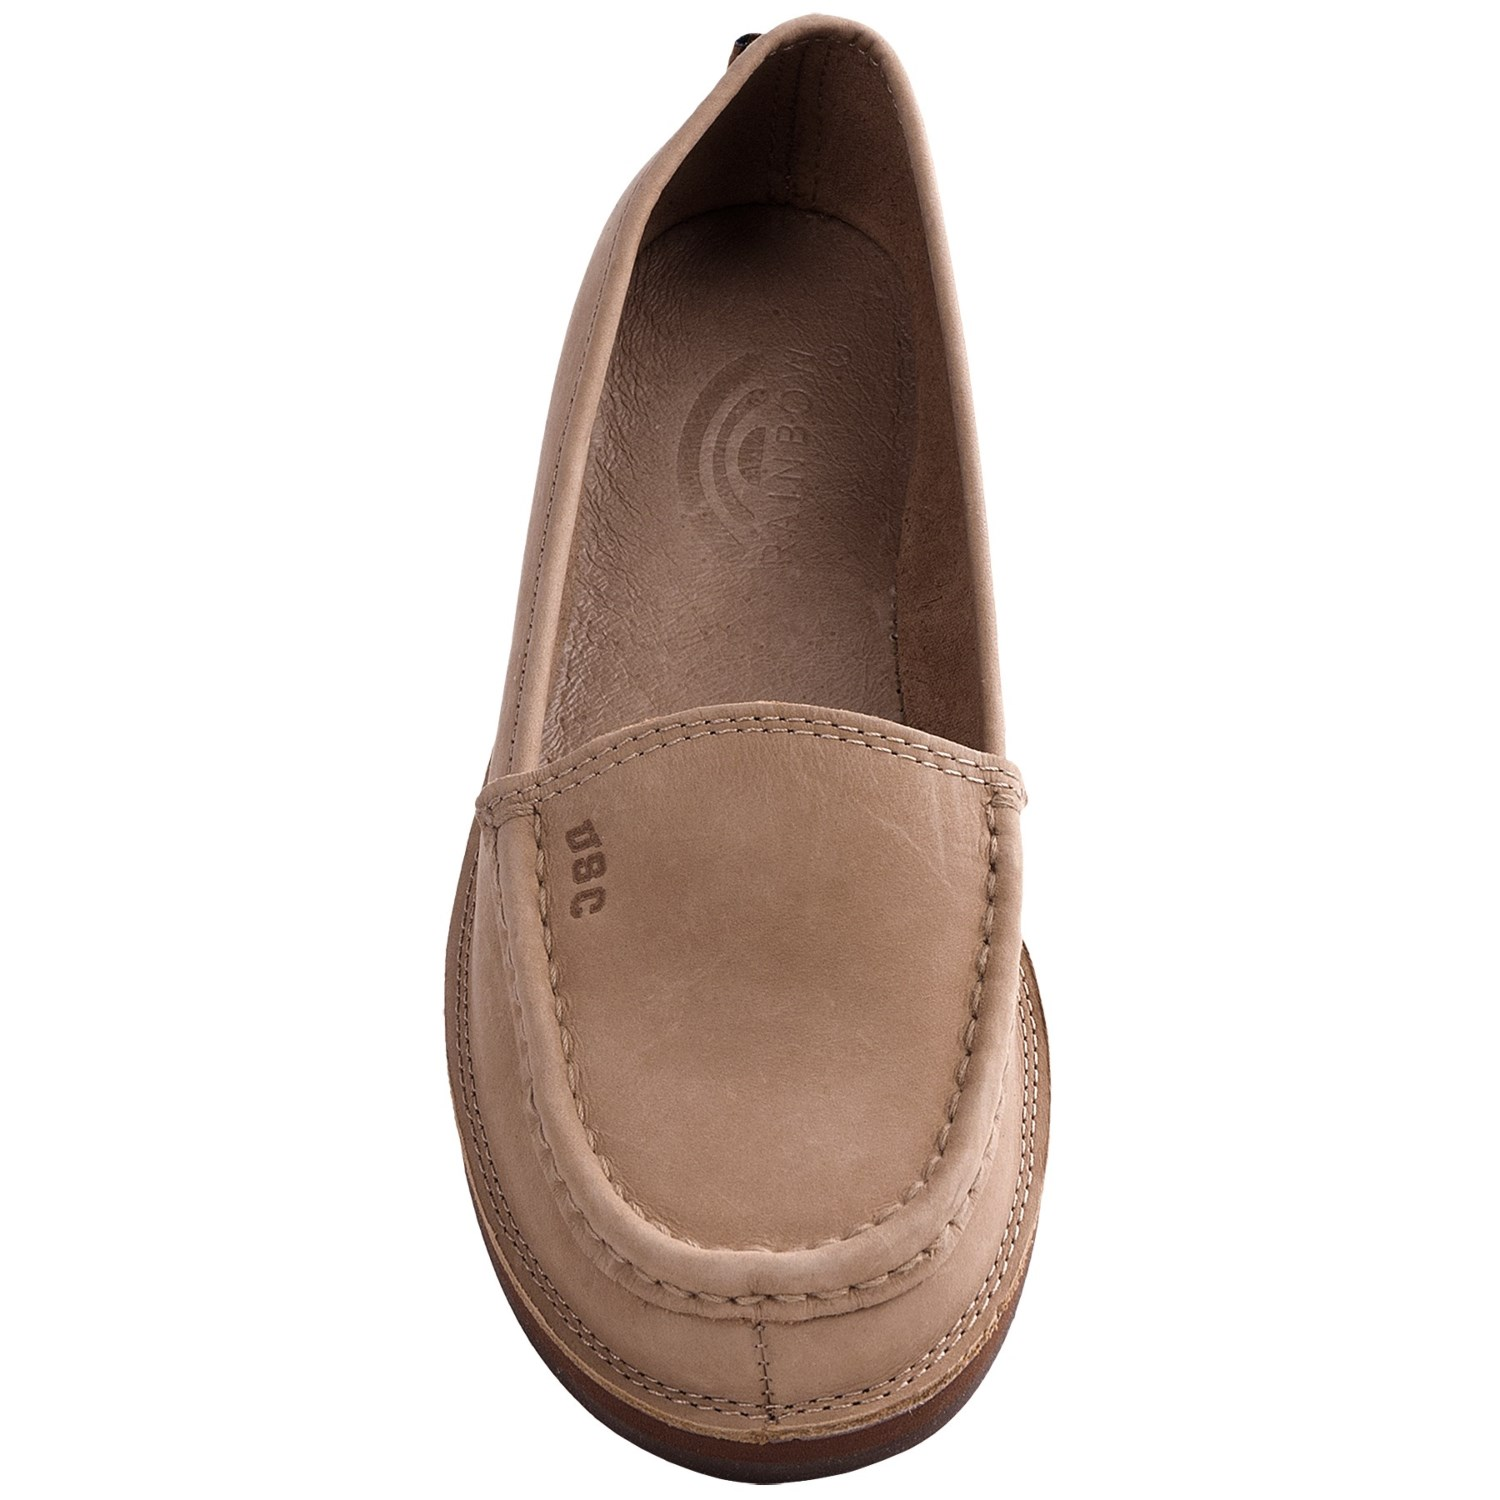 rainbow sandals college logo loafer shoes for women